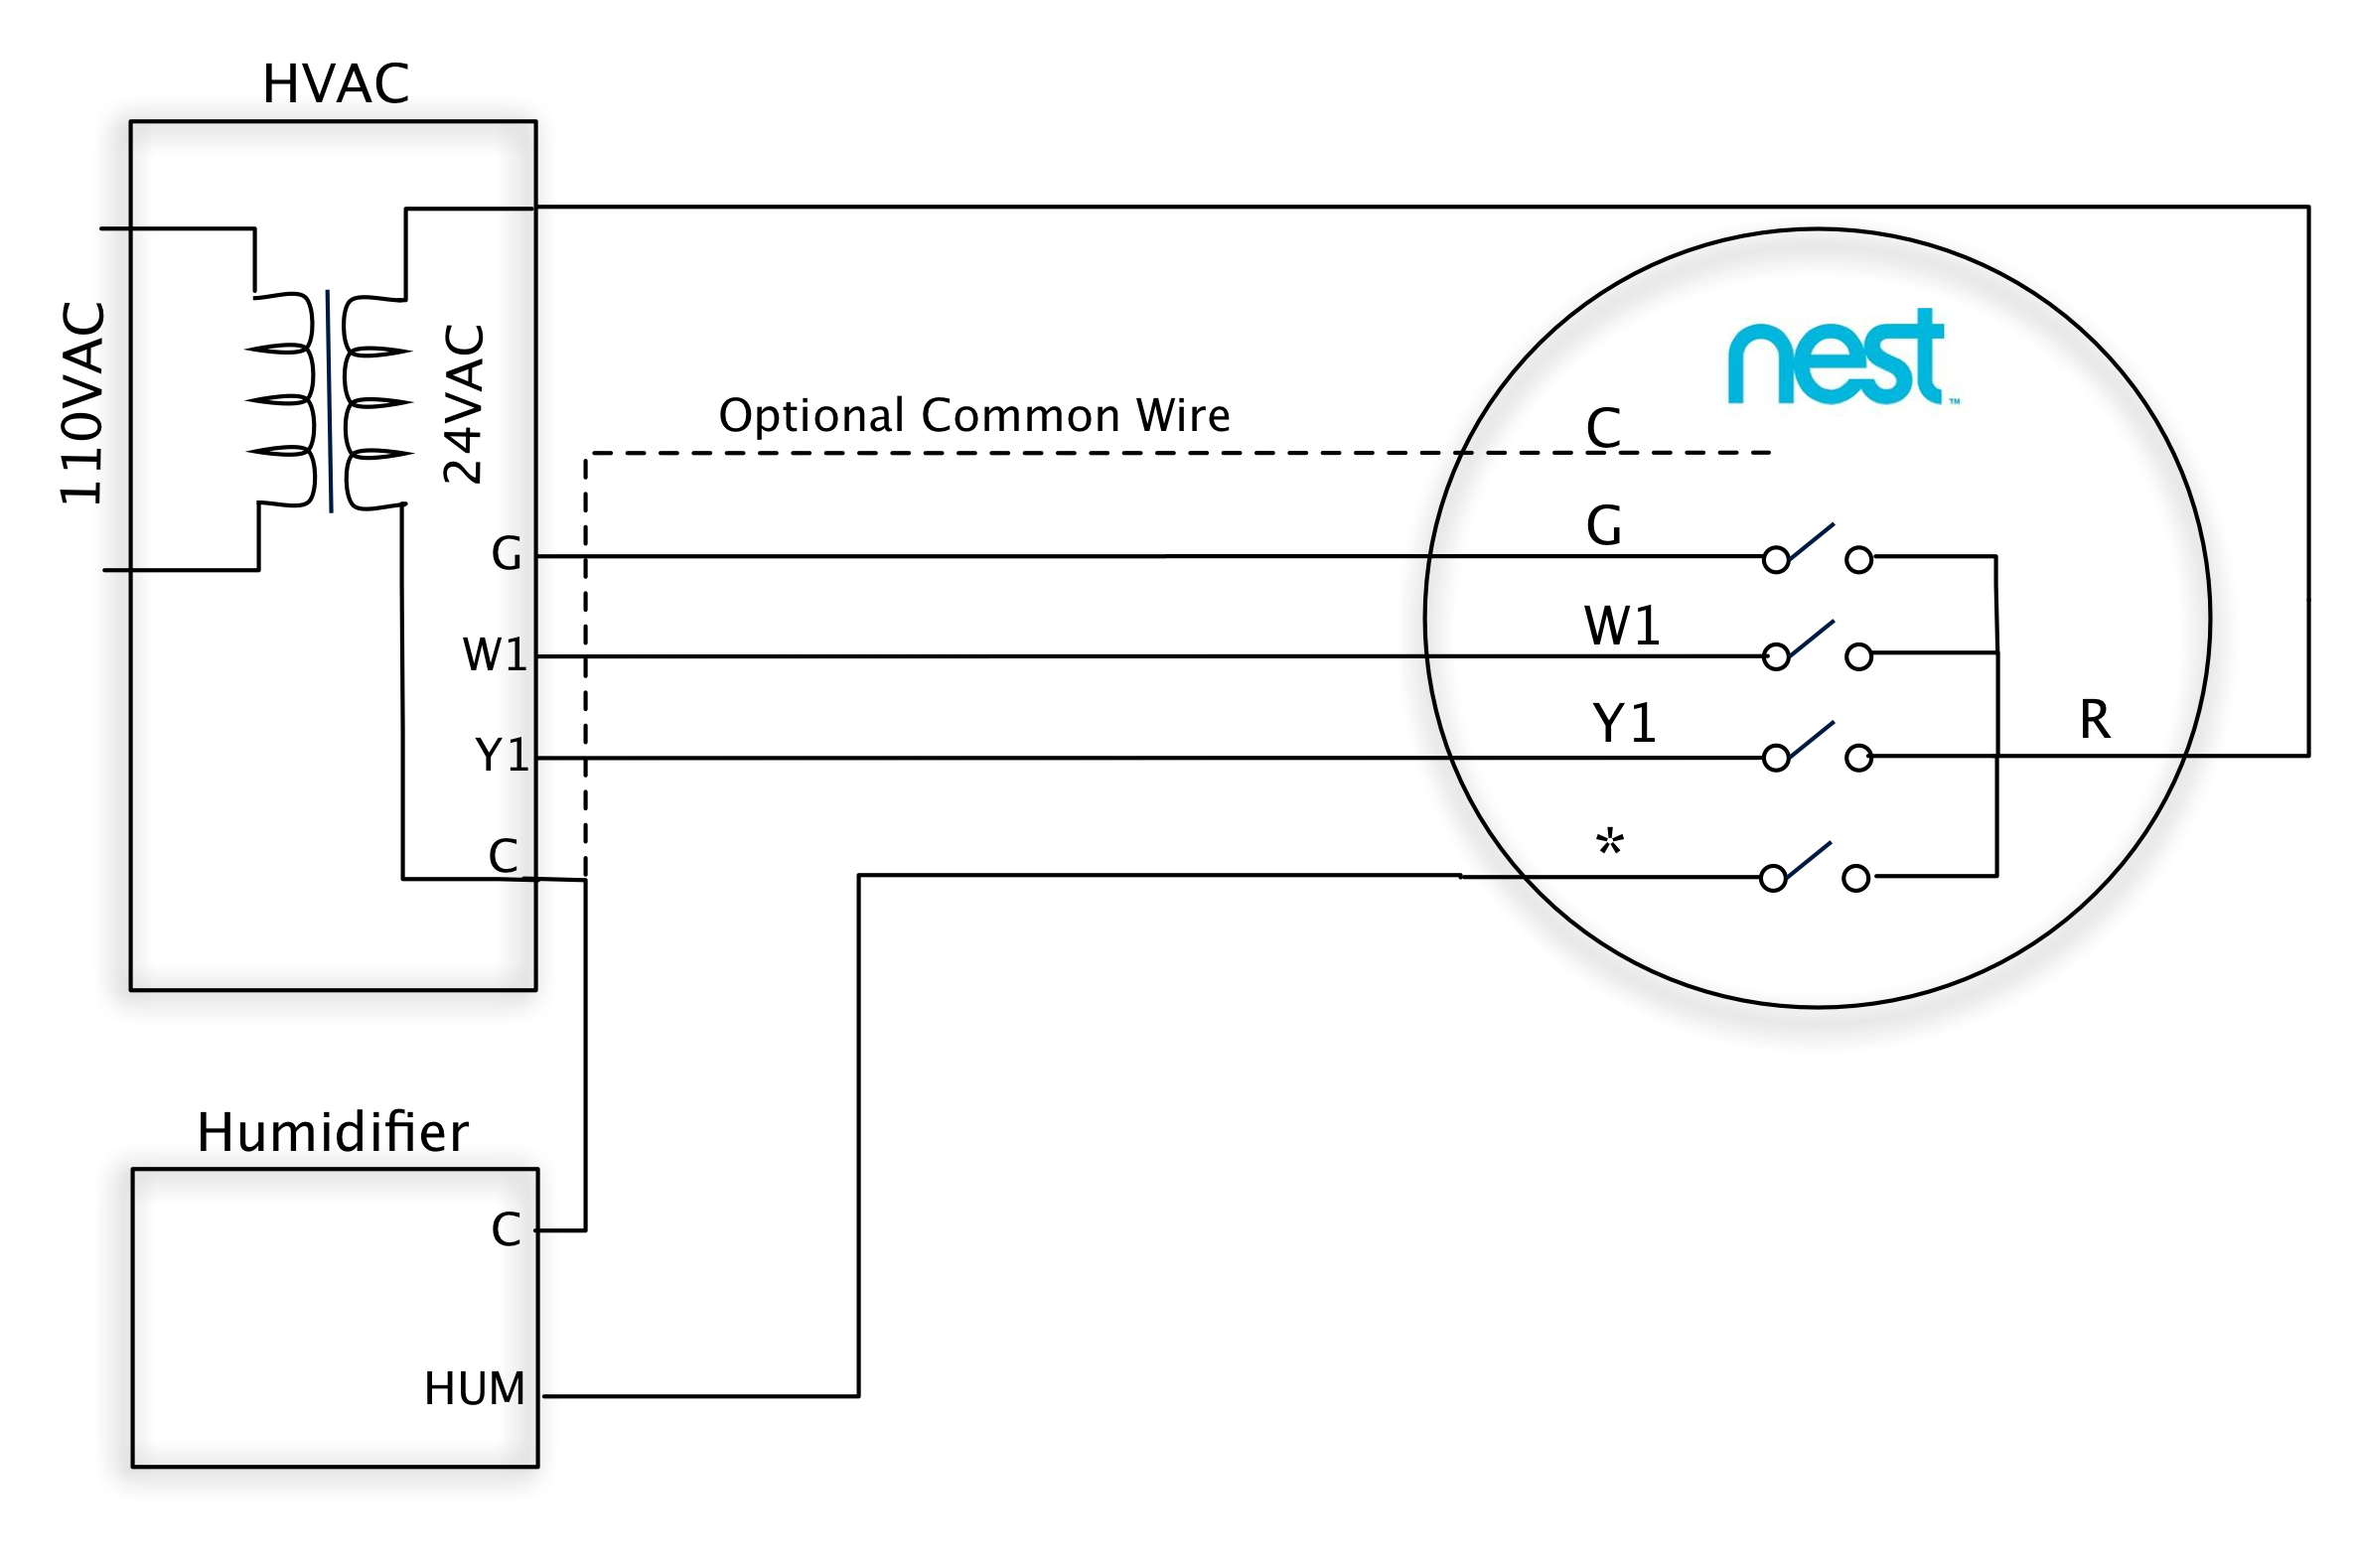 Nest Wiring Diagram For Heat Pump 7 Wires from nest.com